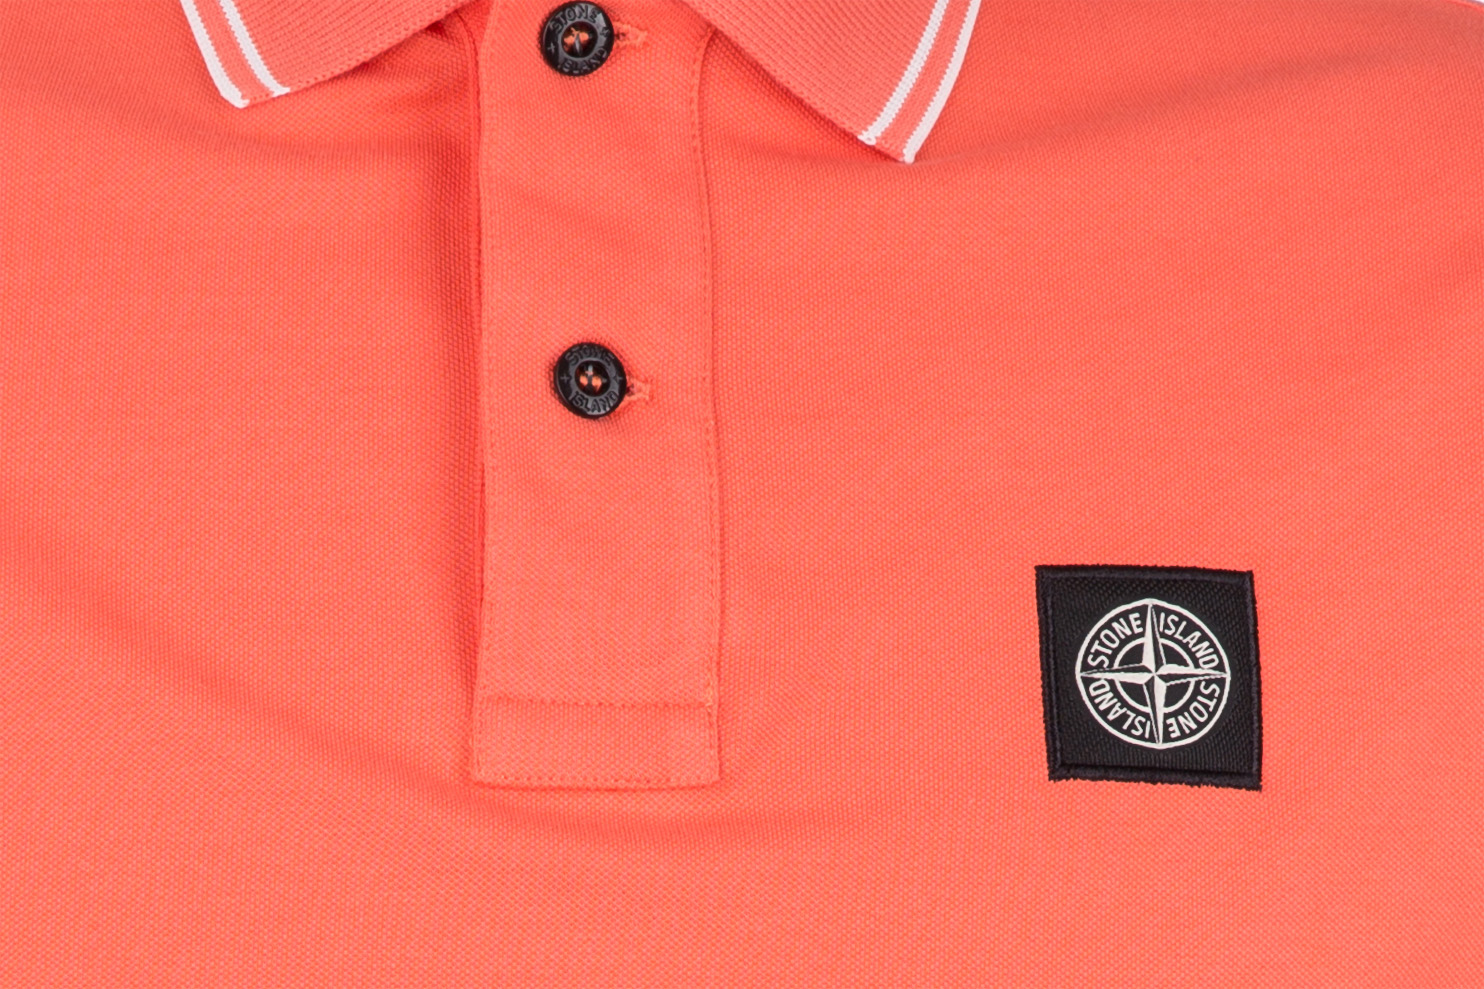 Stone Island Herren Poloshirt Orange | SAILERstyle